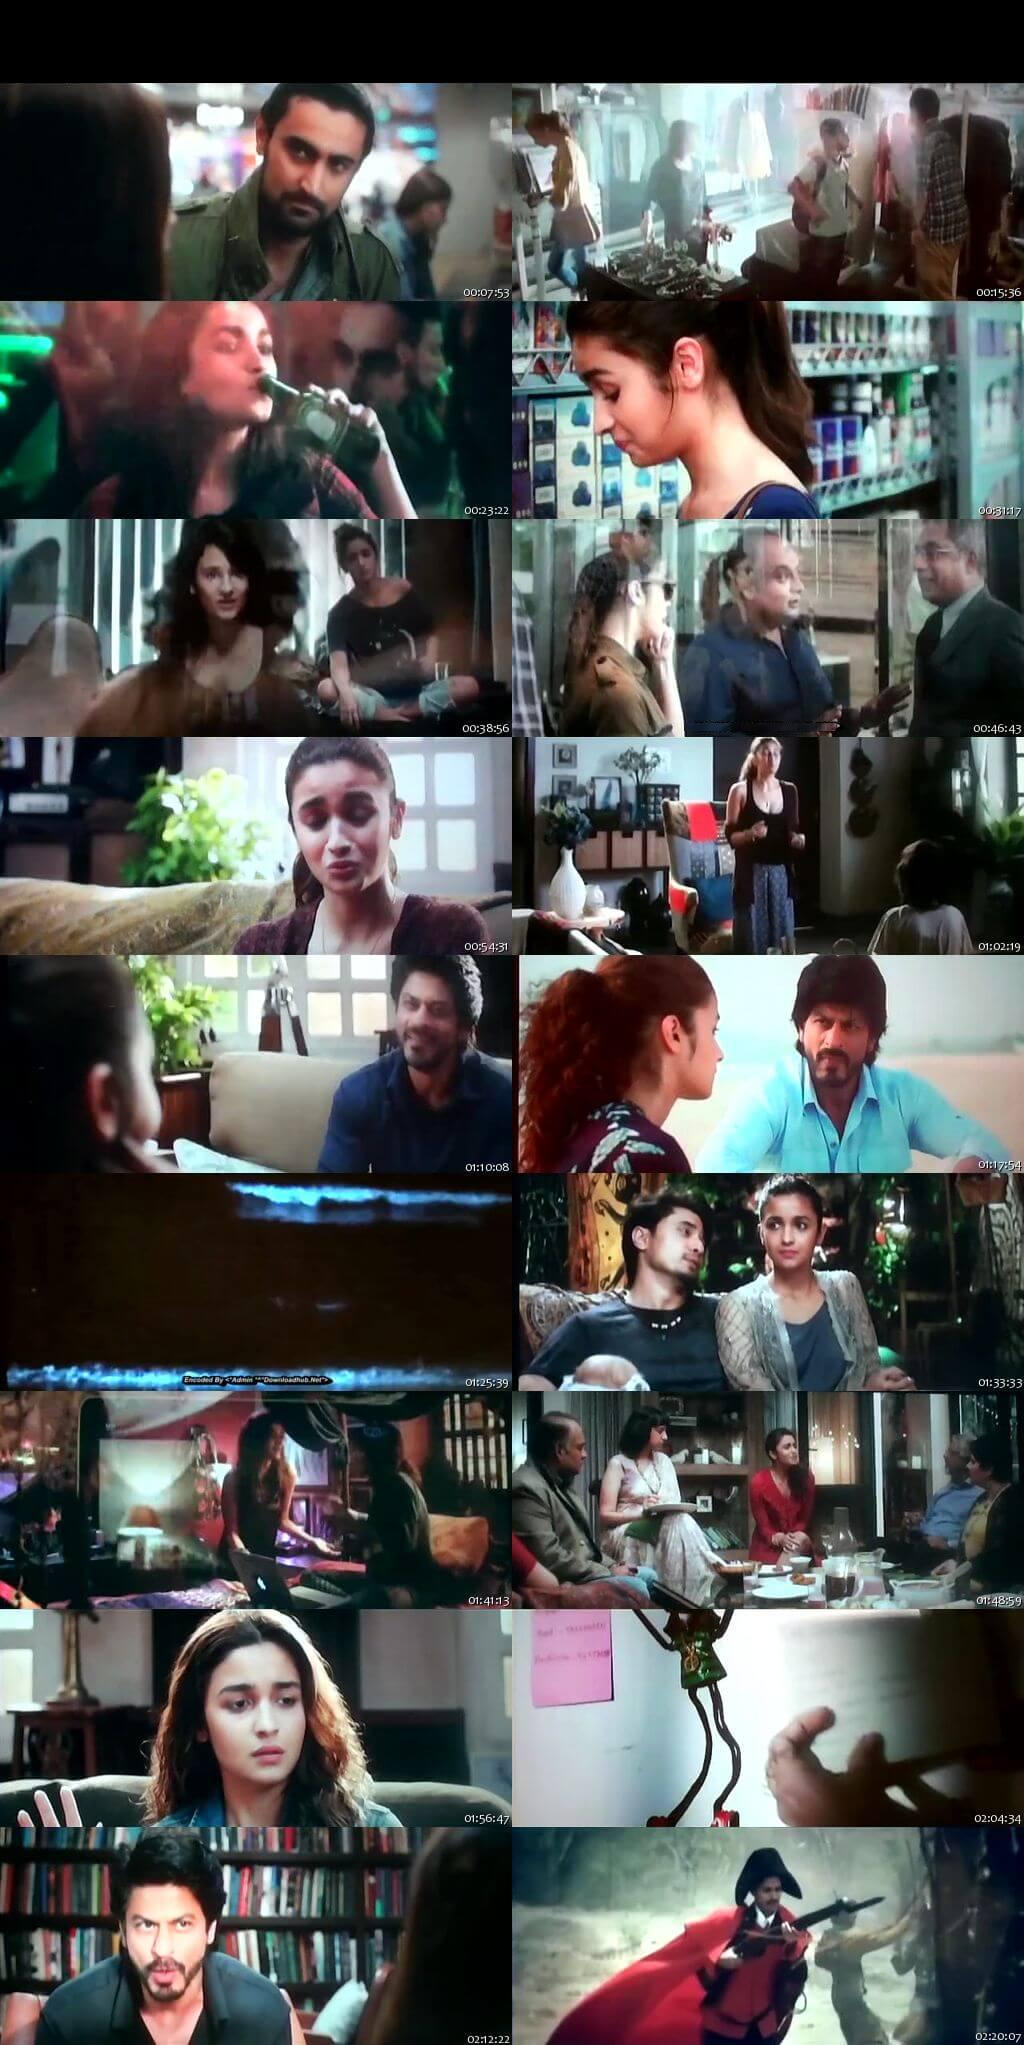 Watch Online Dear Zindagi 2016 100MB Full Movie Free Download For Mobiles DVDScr 3GP Mp4 HEVC